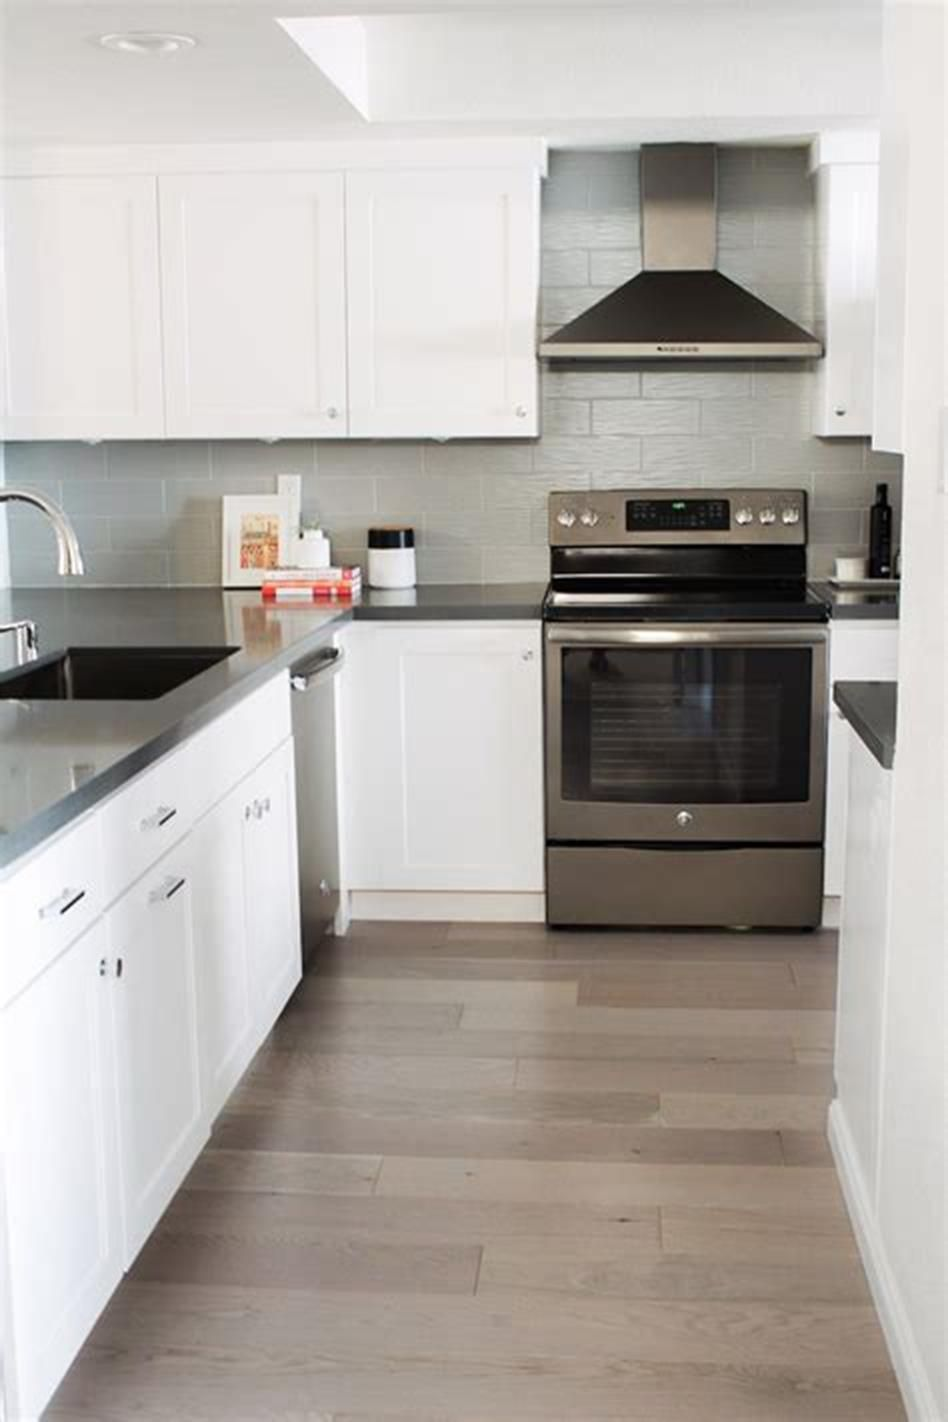 42 Amazing Ideas Kitchen Remodels With White Cabinets For 2019 36 Homenthusiastic Kitchen Remodel Small Condo Kitchen Remodel White Cabinets White Countertops